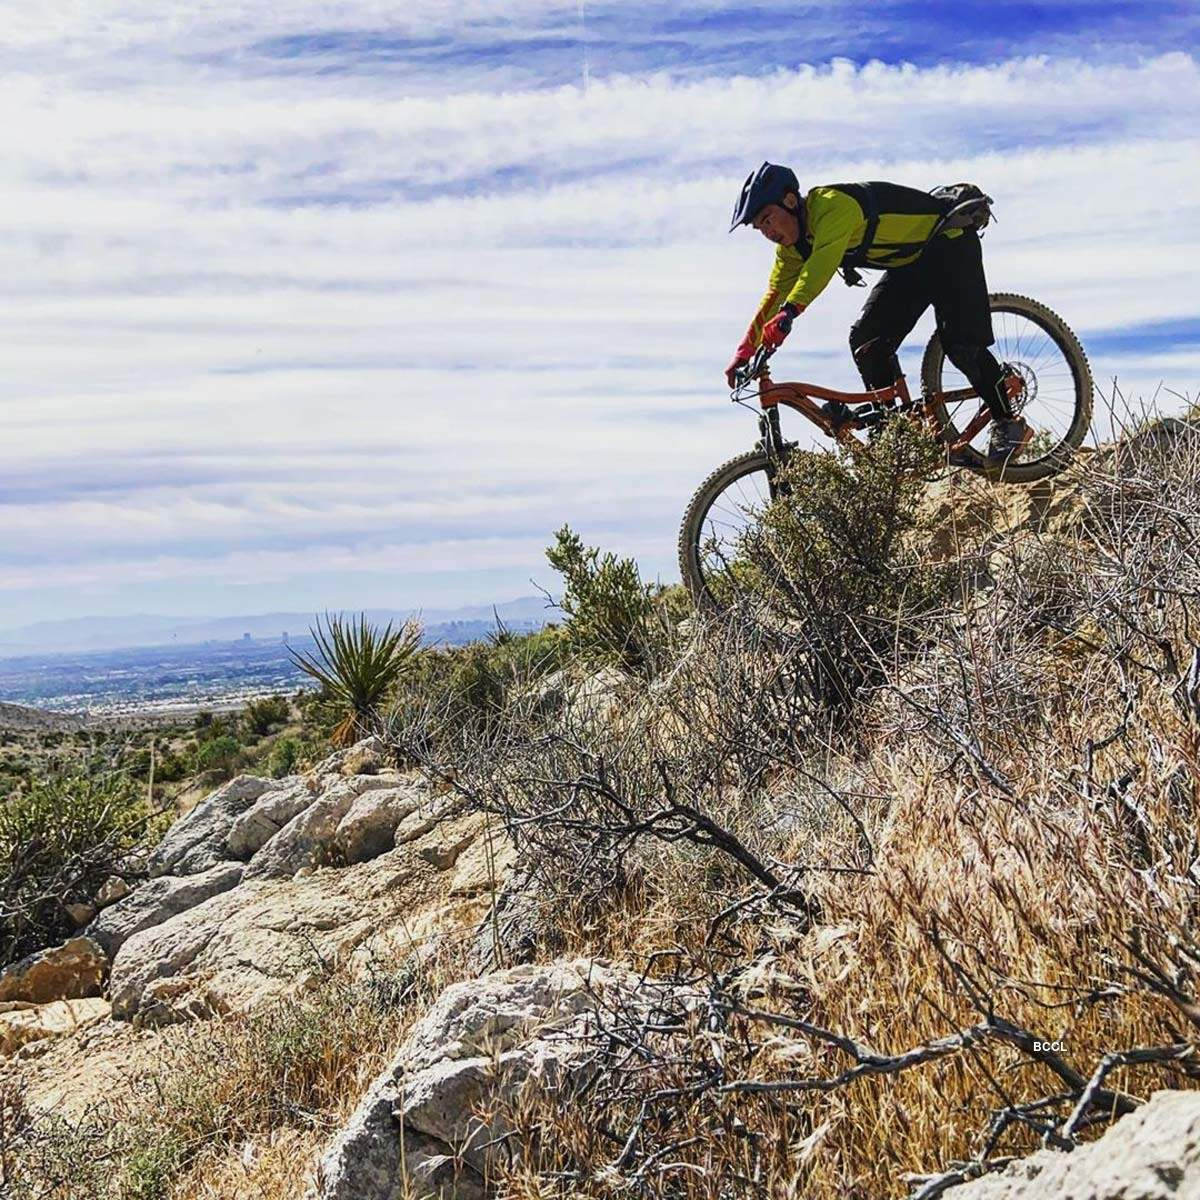 These breathtaking pictures of thrill-seeking mountain bikers will leave you awestruck